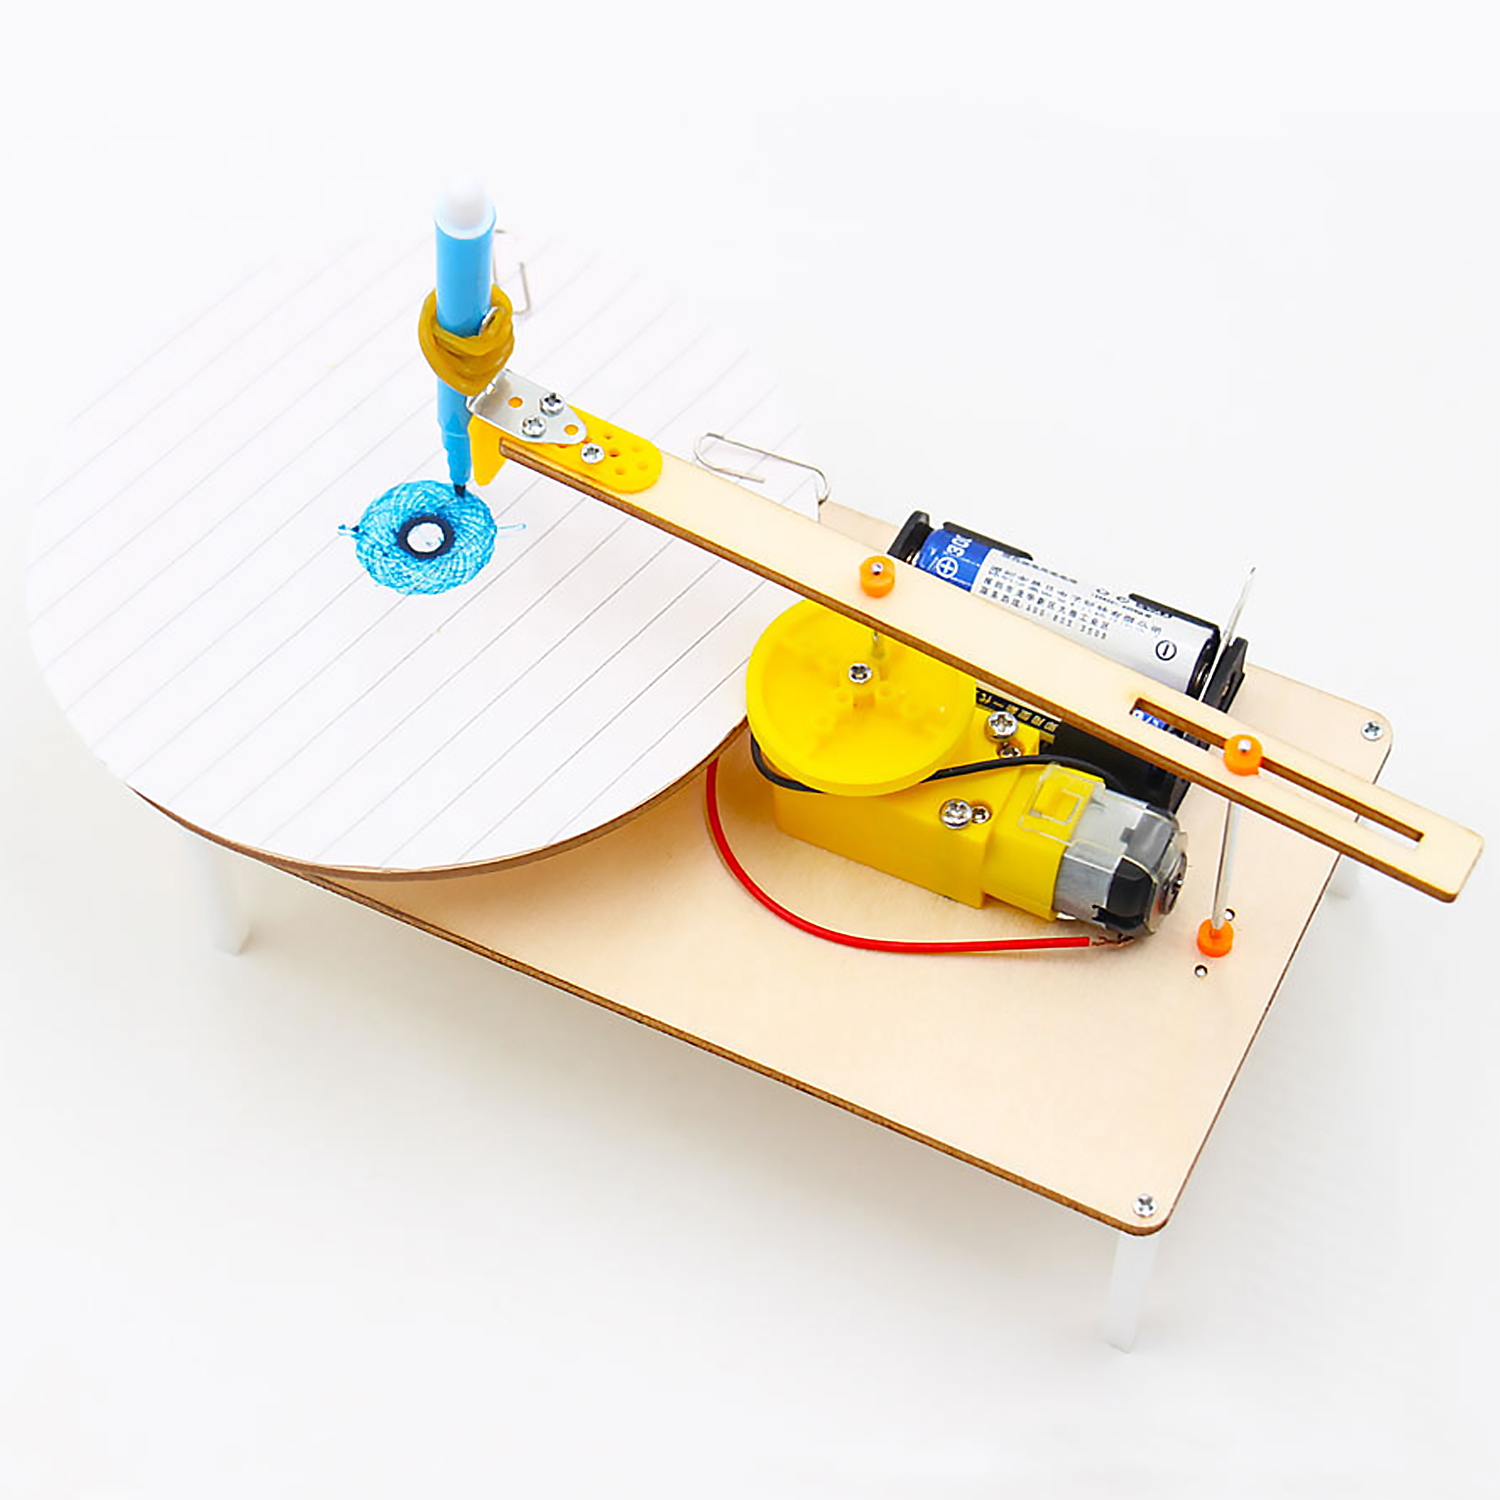 Wooden DIY Electric Plotter Kit Physics Scientific Experiment Educational Toy For Kids Children School Project Homework